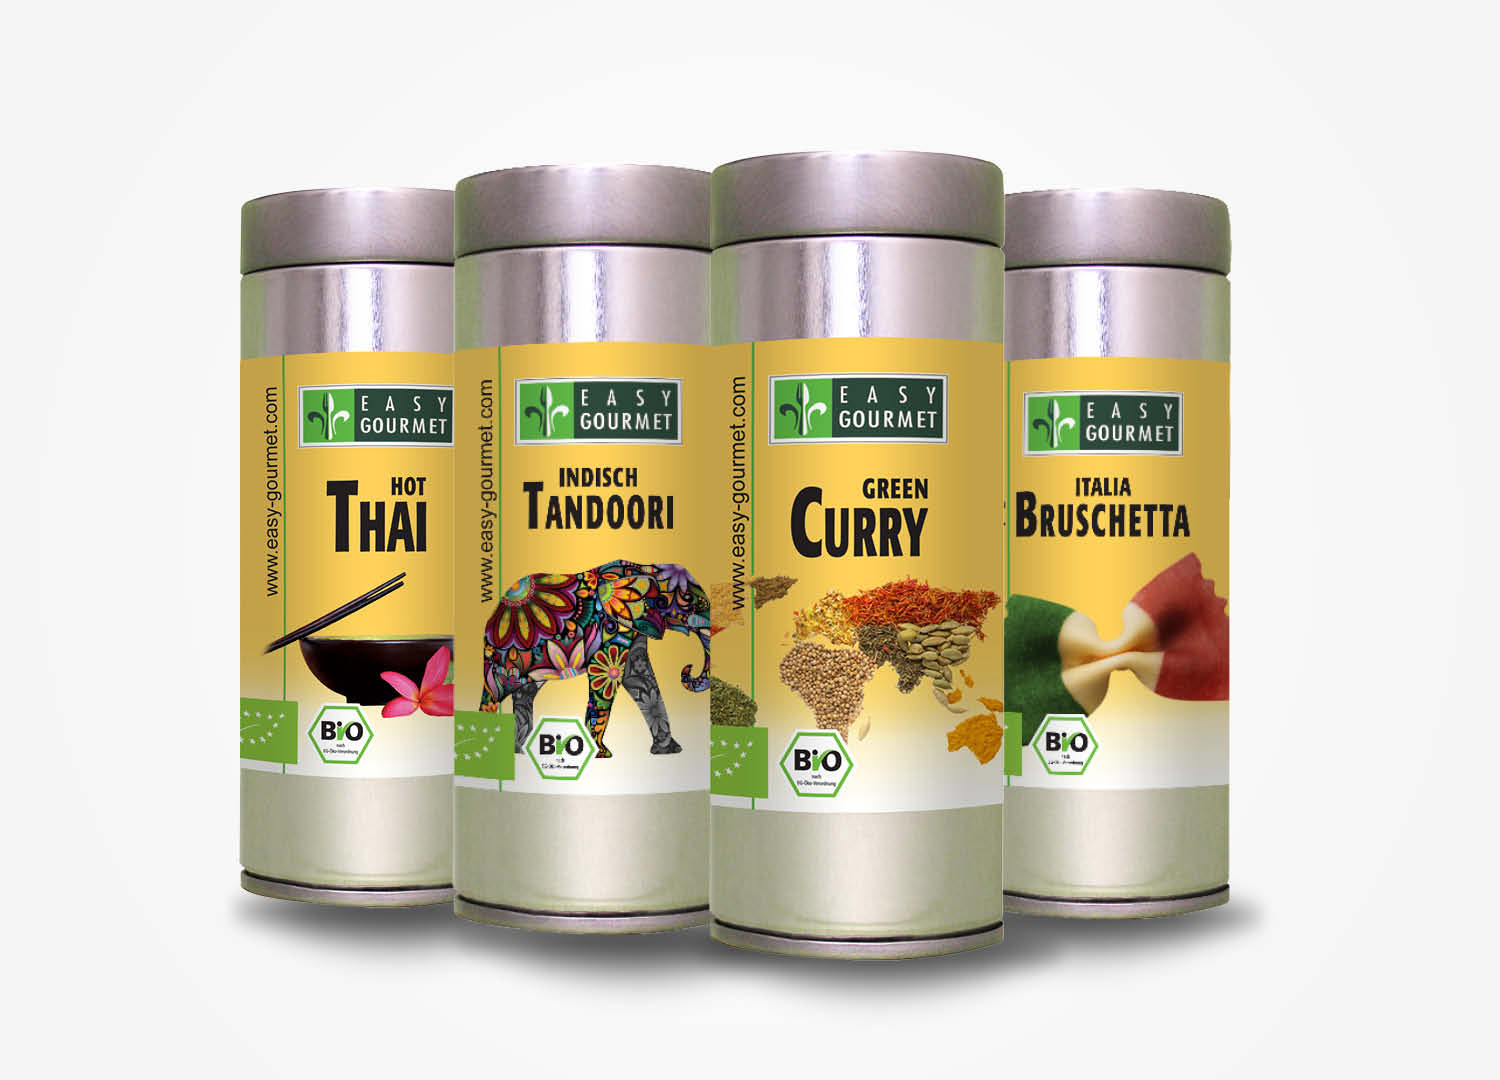 Category spice mills